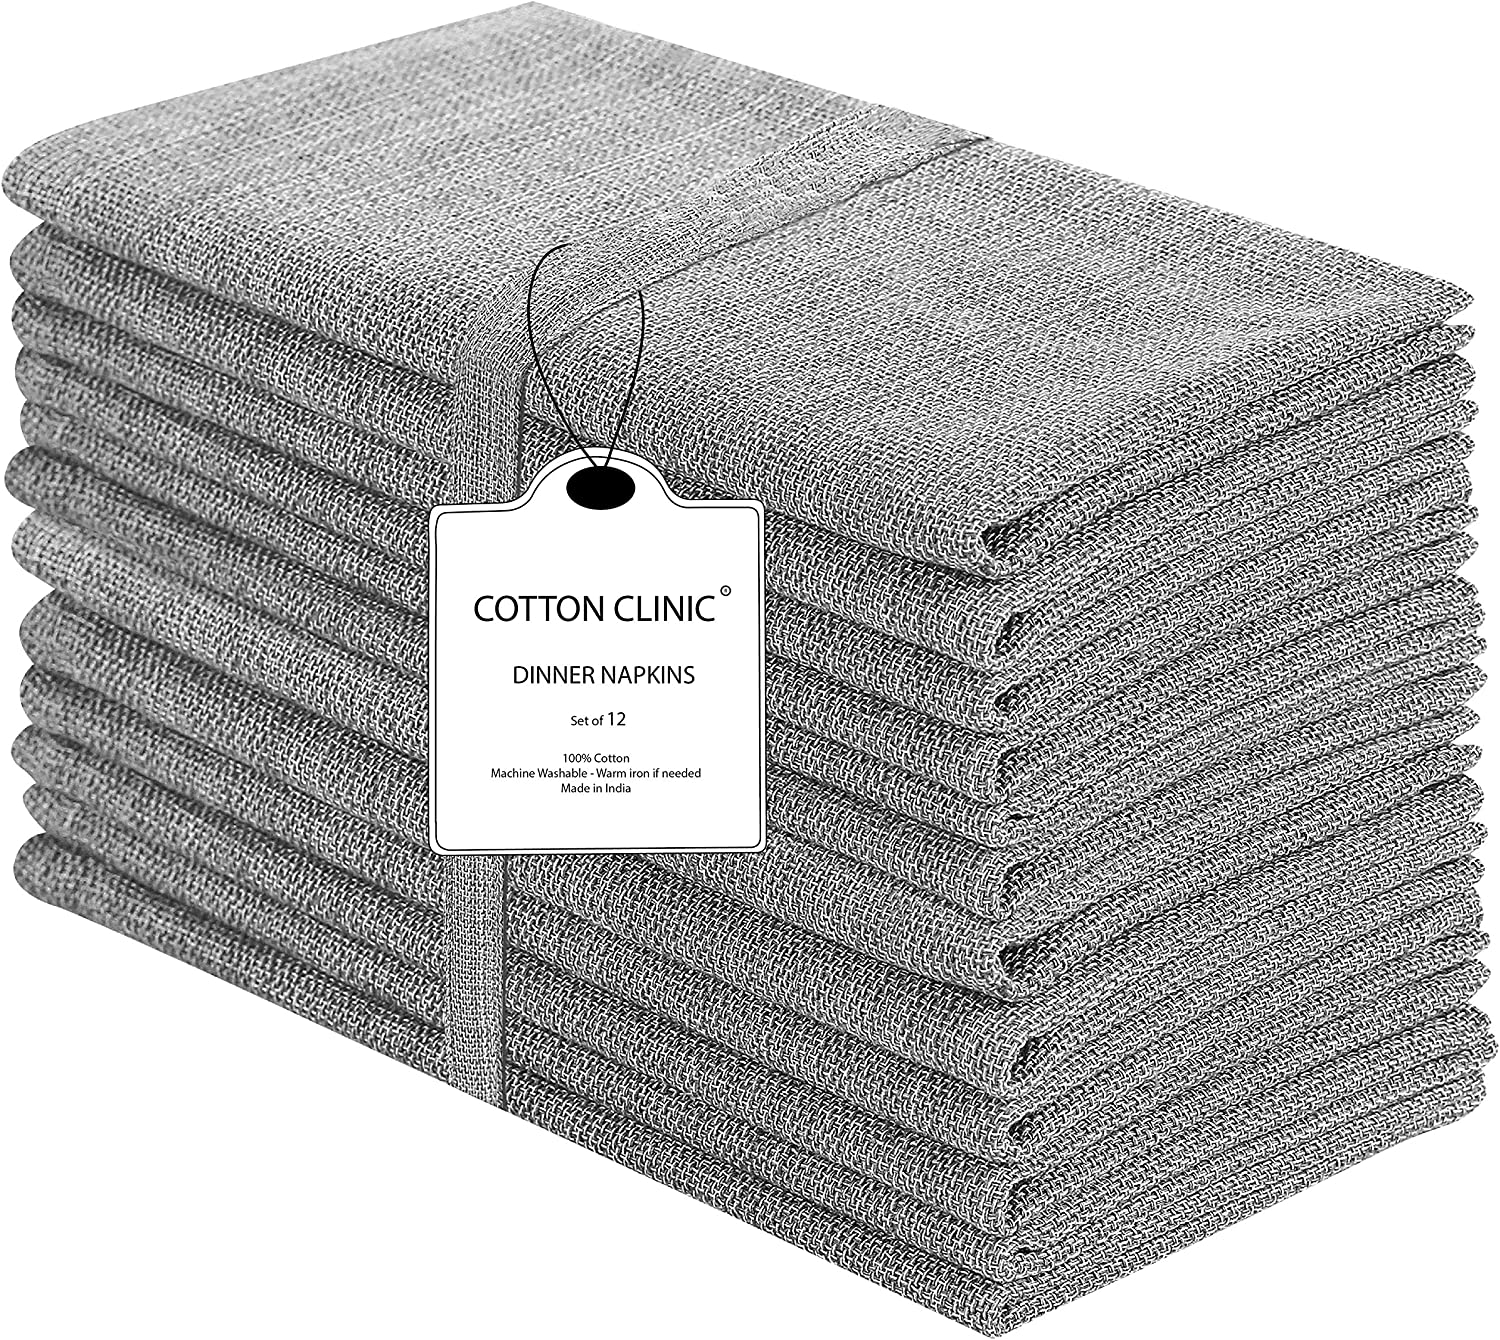 Cotton Clinic 20x20 Cloth Dinner Napkins Set of 12, 100% Cotton Farmhouse Grass Cloth Dinner Napkins, Cocktail Napkins, Wedding Dinner Napkins with Mitered Corners and Generous Hem - Gray: Home & Kitchen